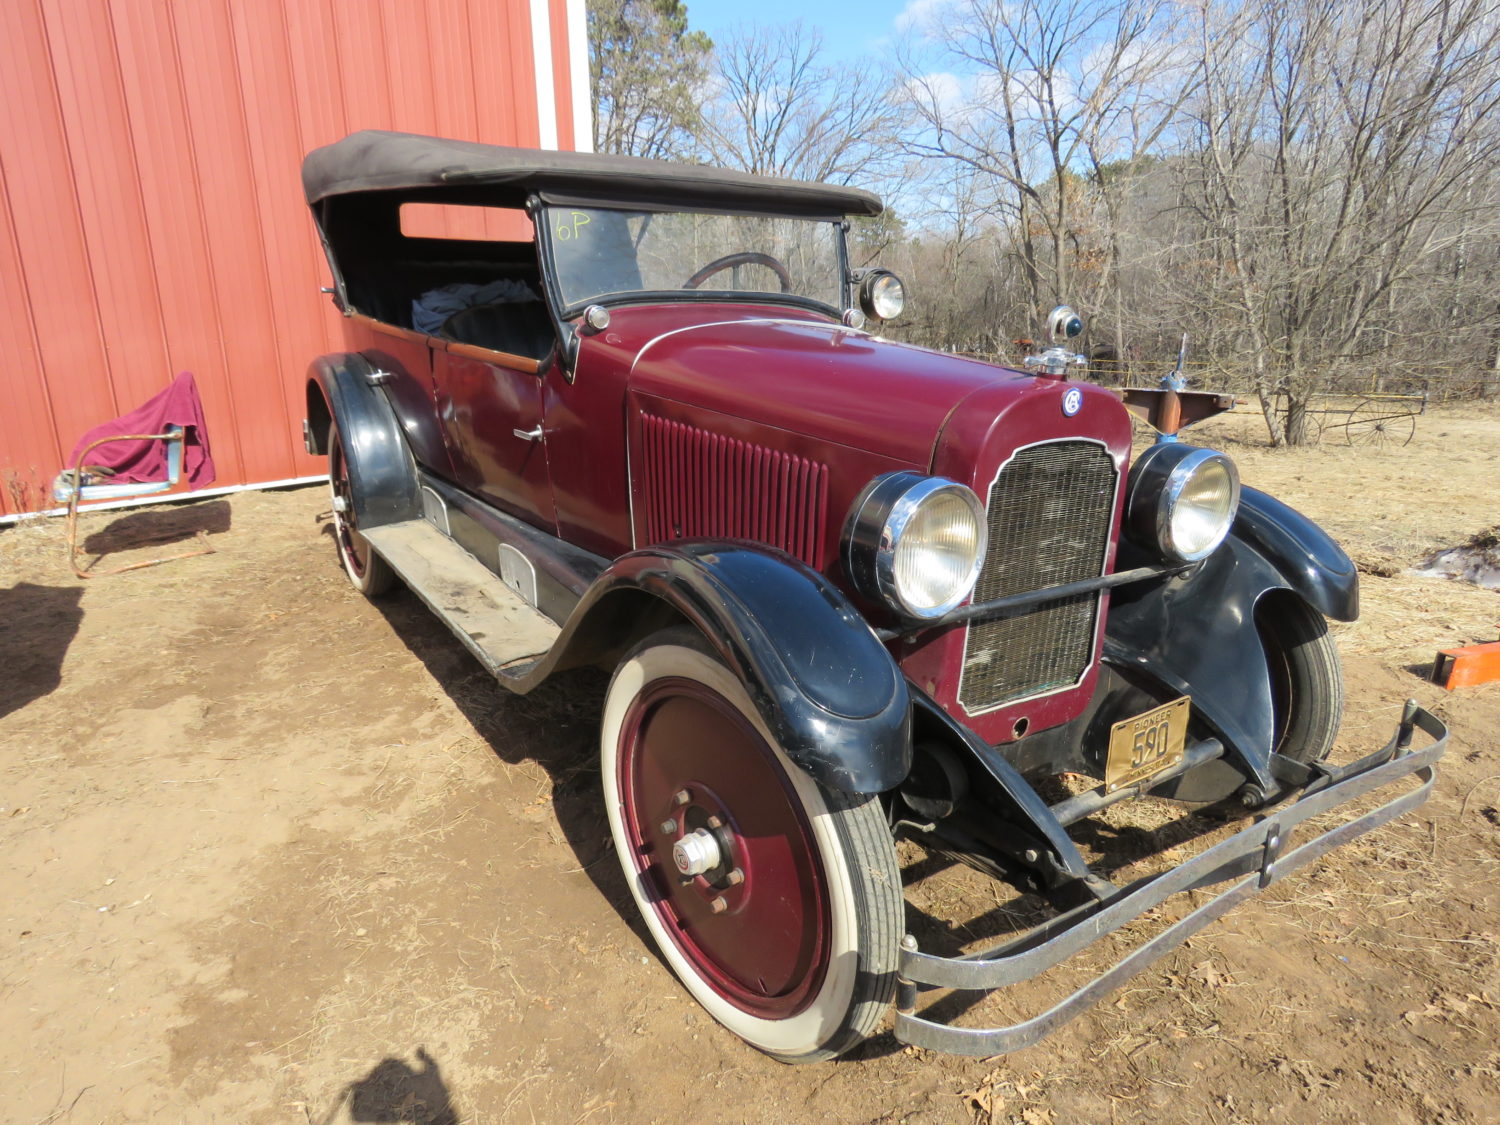 ONLINE ONLY! Collector Cars, Parts, Antique Tractors, Memorabilia, Steam, & More! The Ken Seefert Collection - image 7